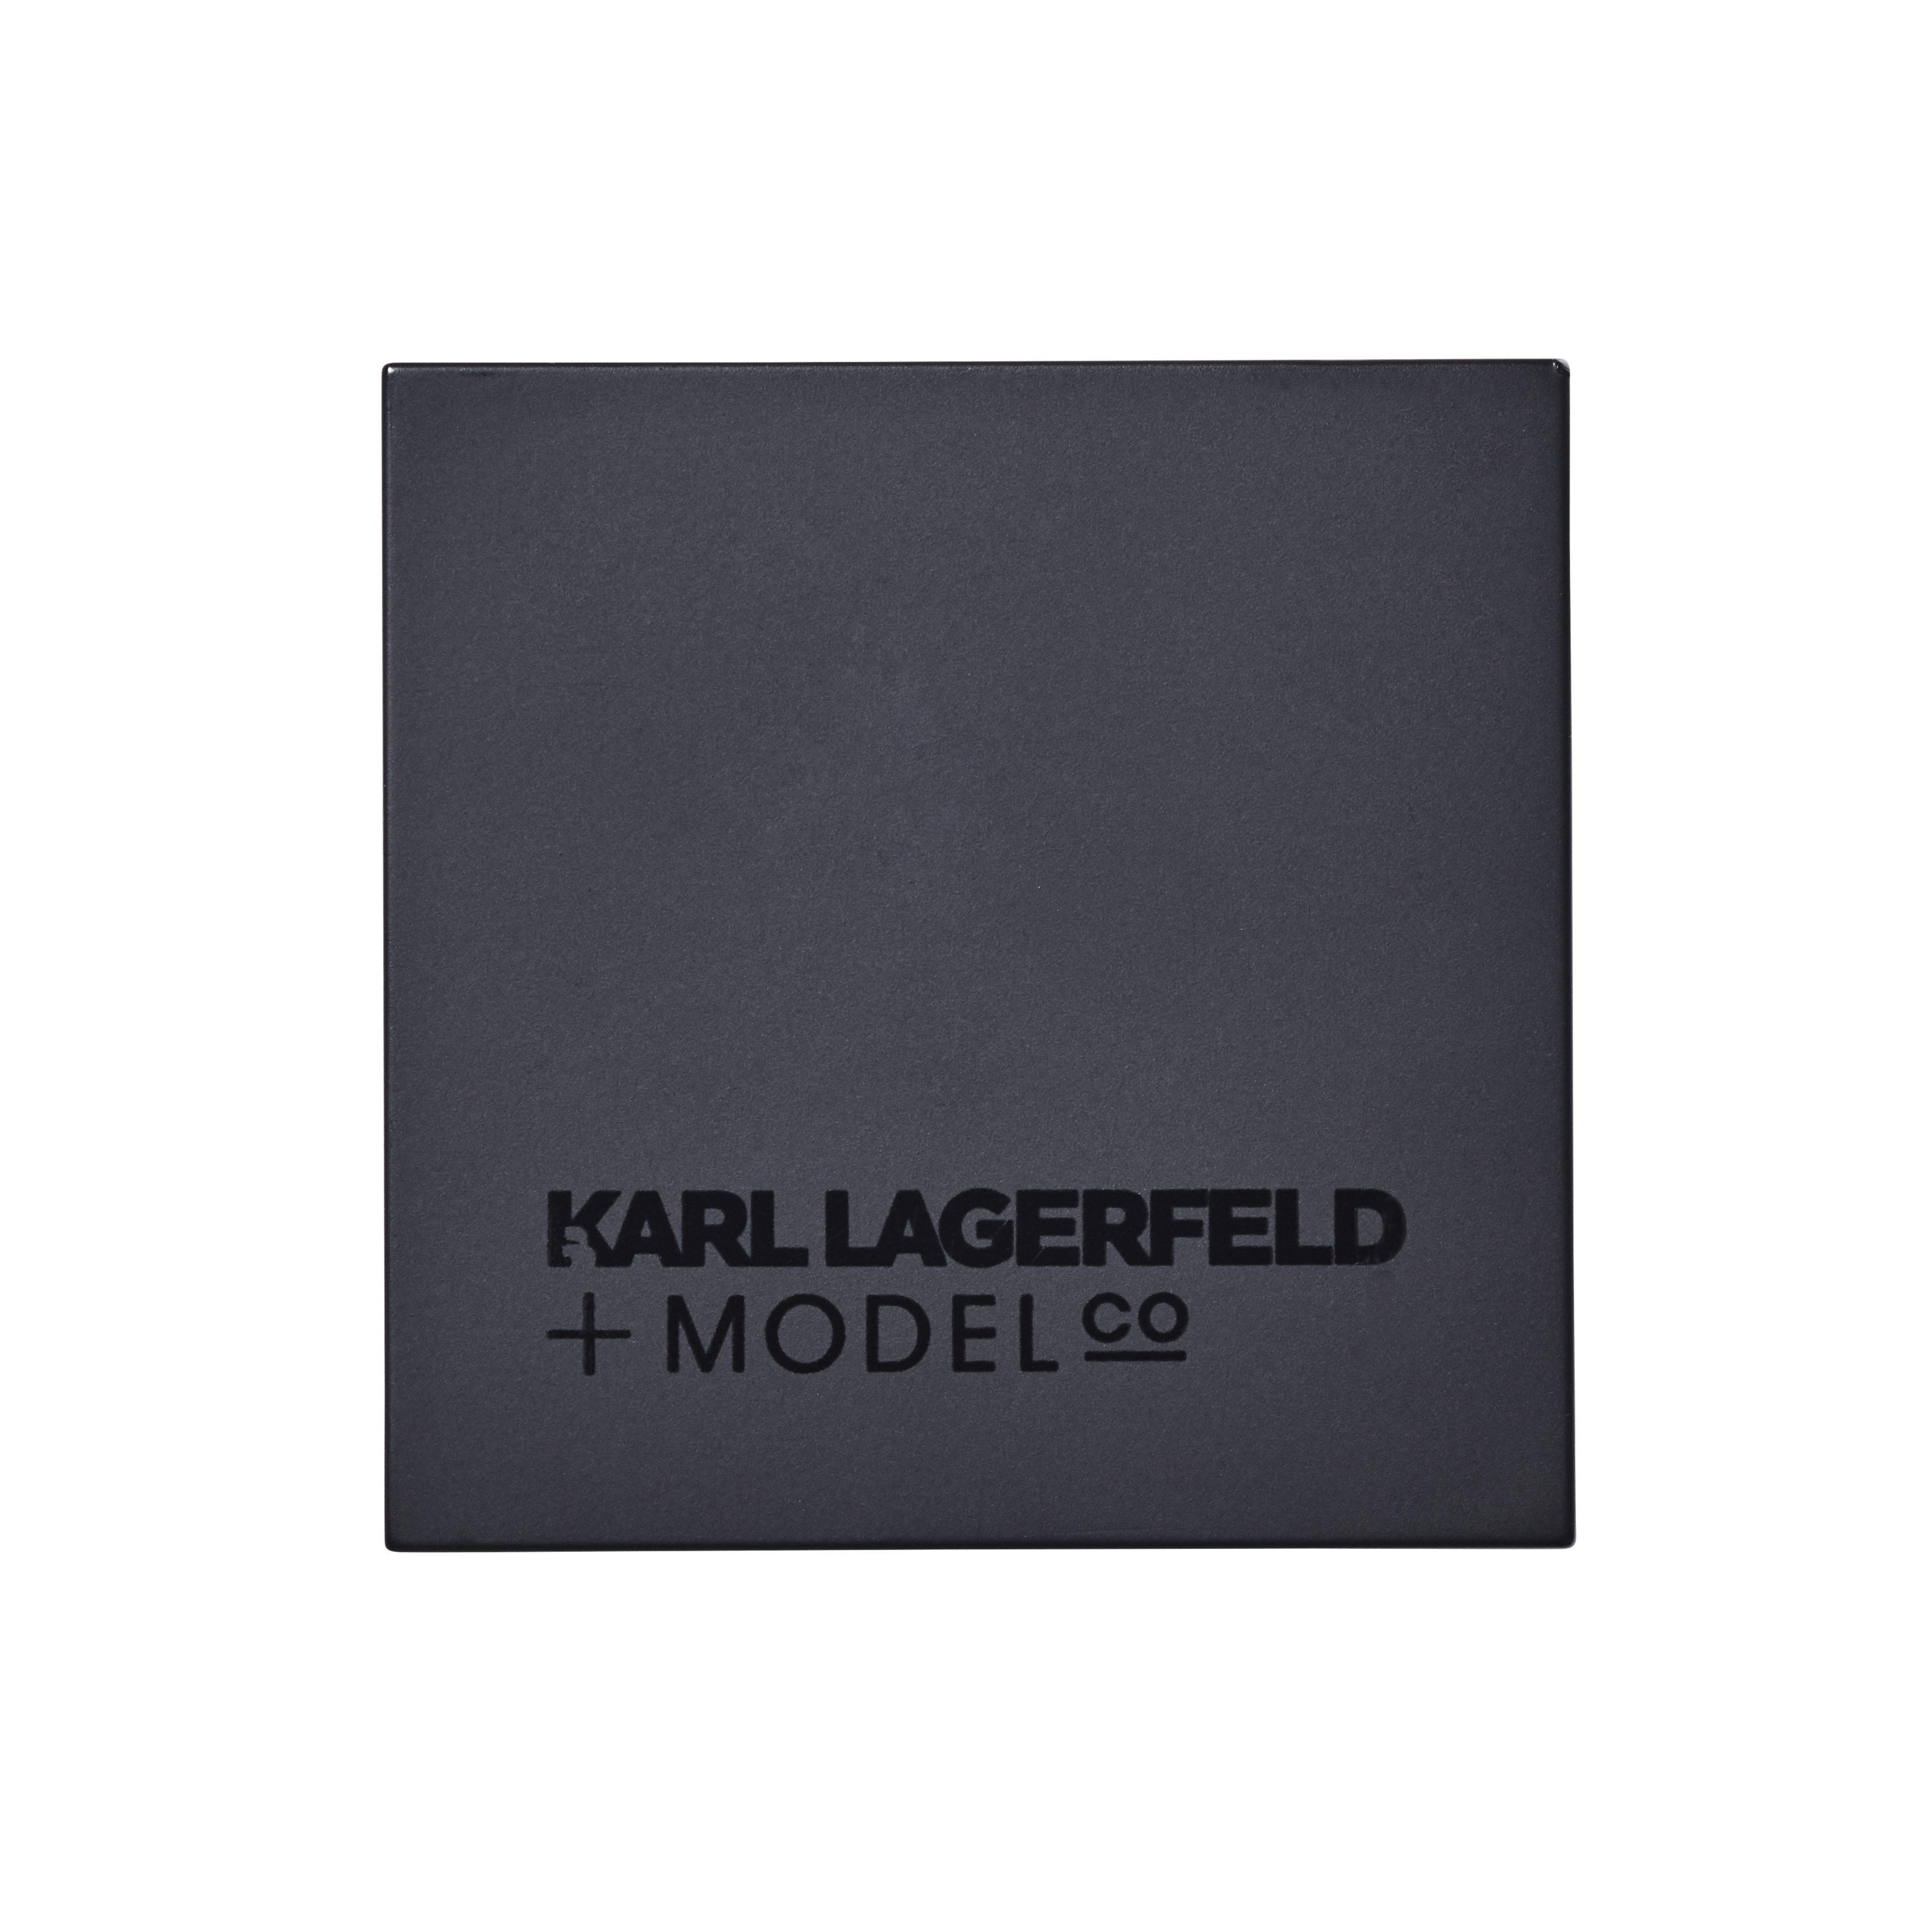 KARL LAGERFELD + MODELCO LUXE HIGHLIGHT & GLOW-NUDE PINK_CLOSED